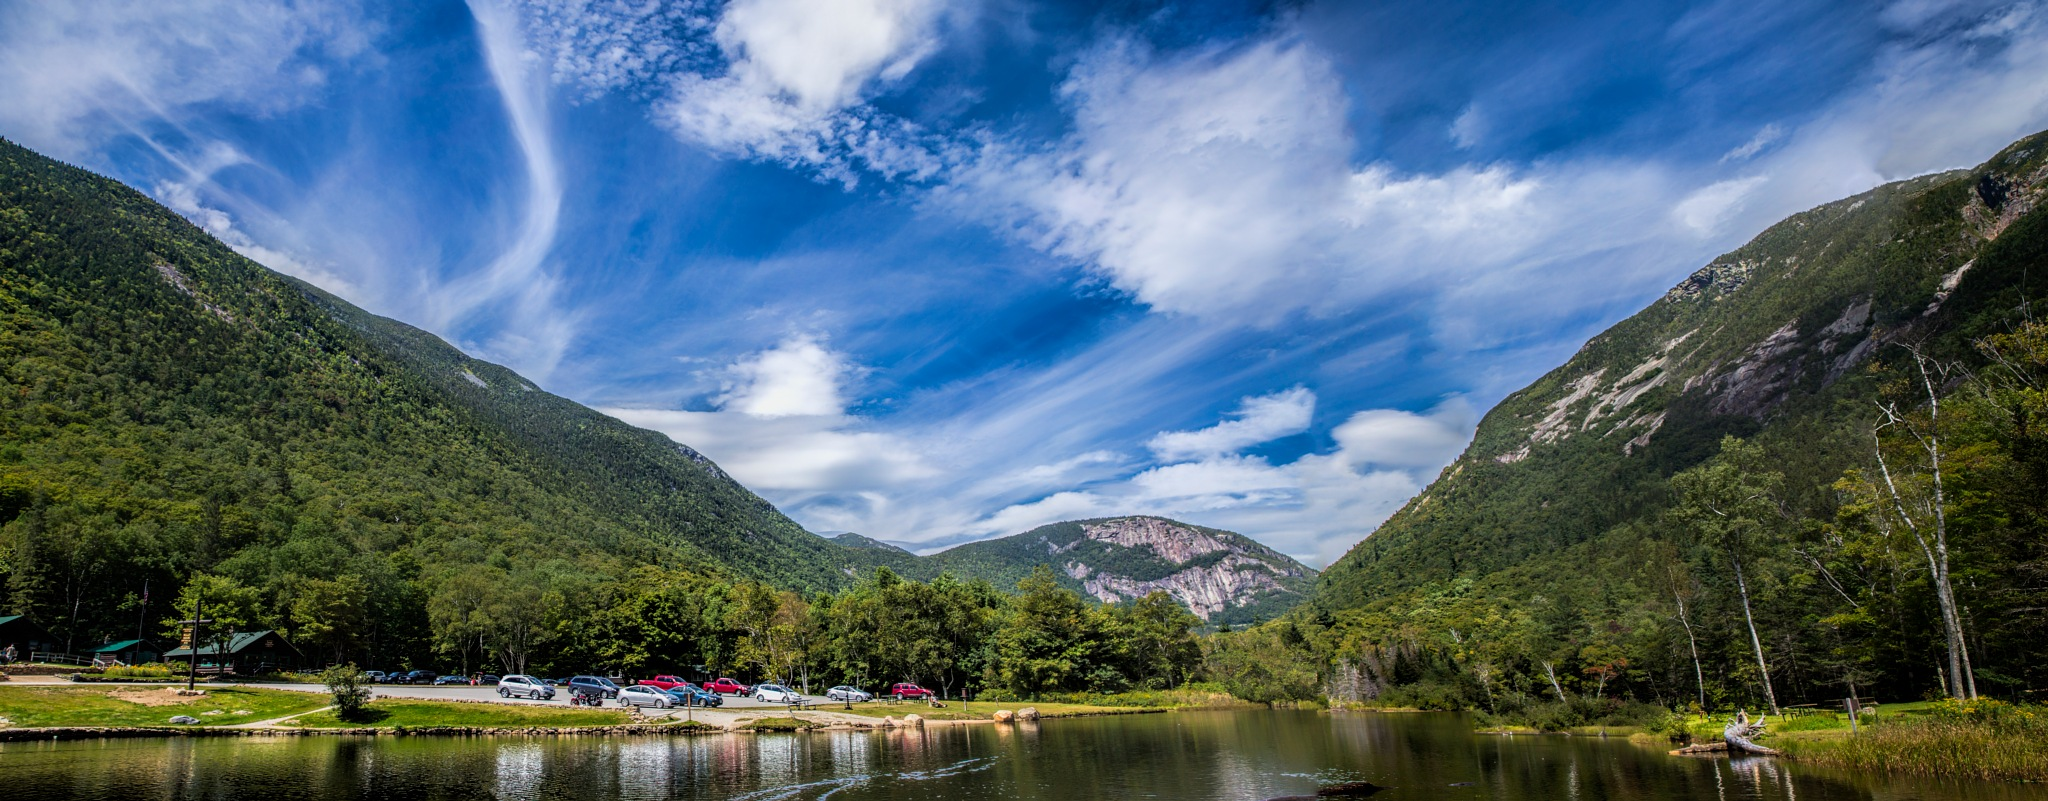 Crawford Notch State Park by quarryclimber